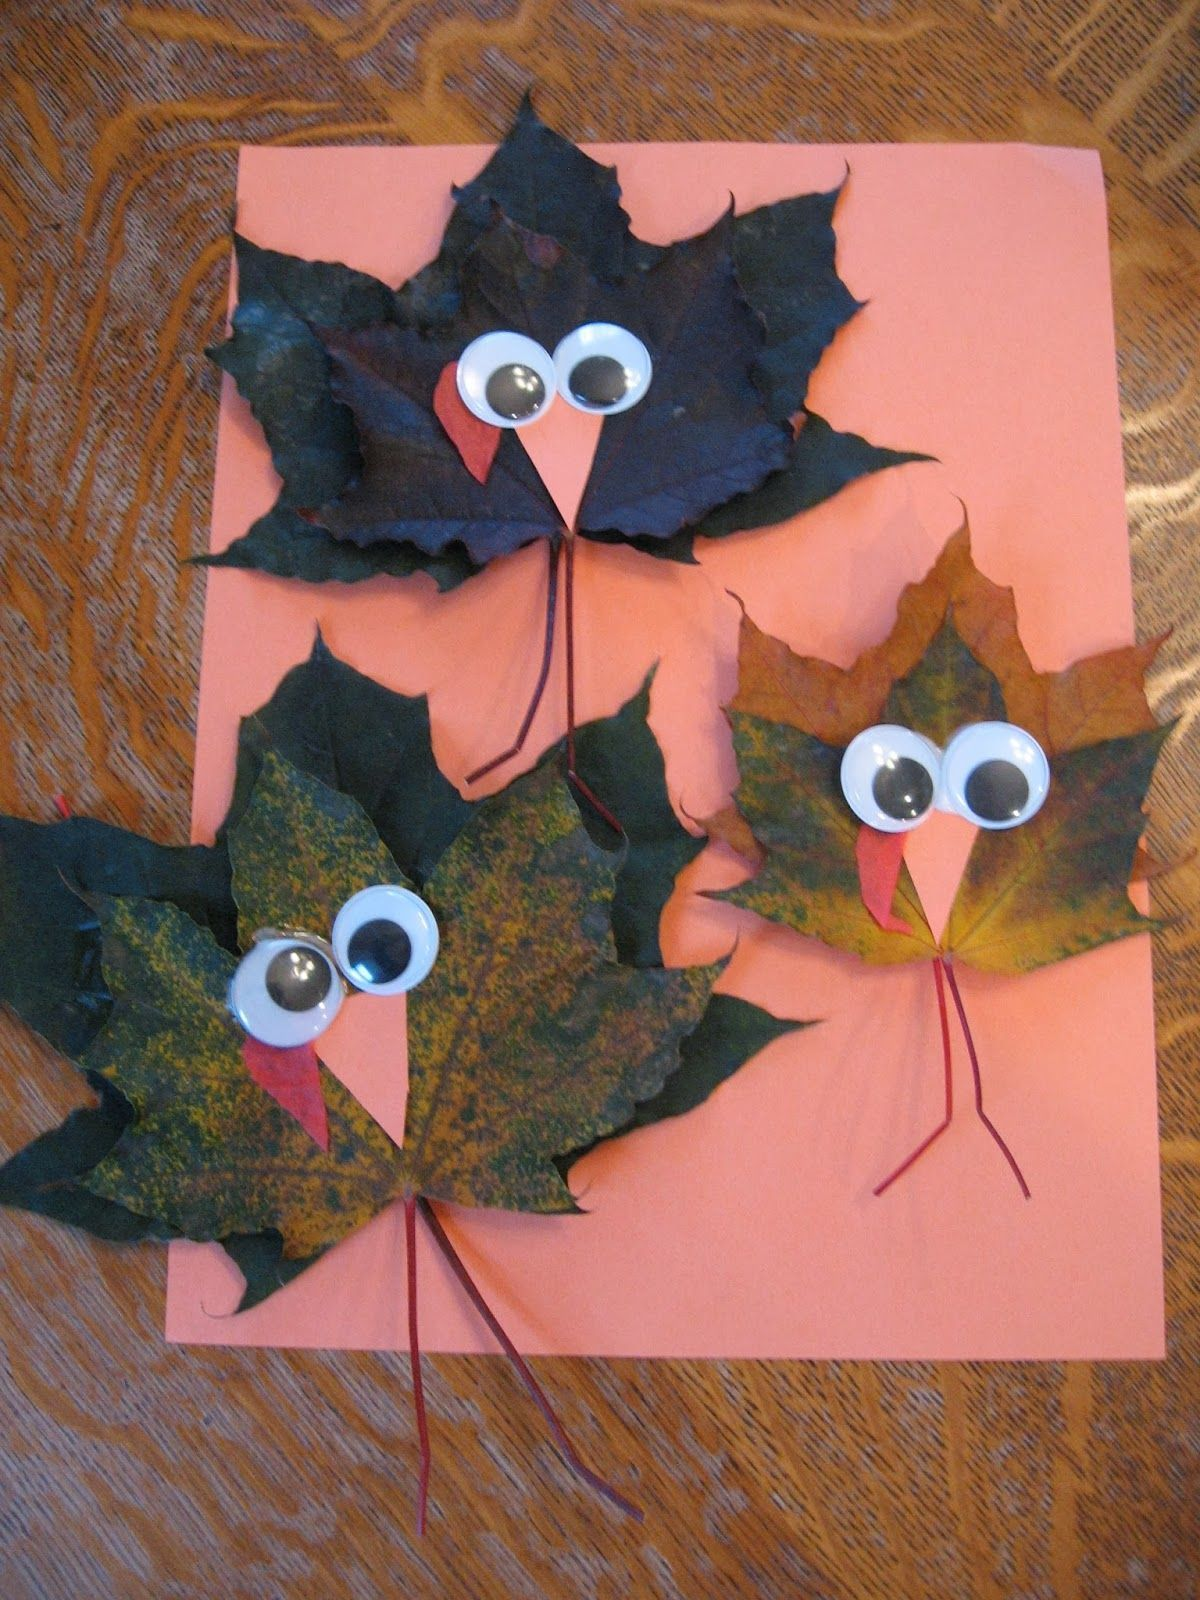 Nature hunt then craft #toddlercrafts